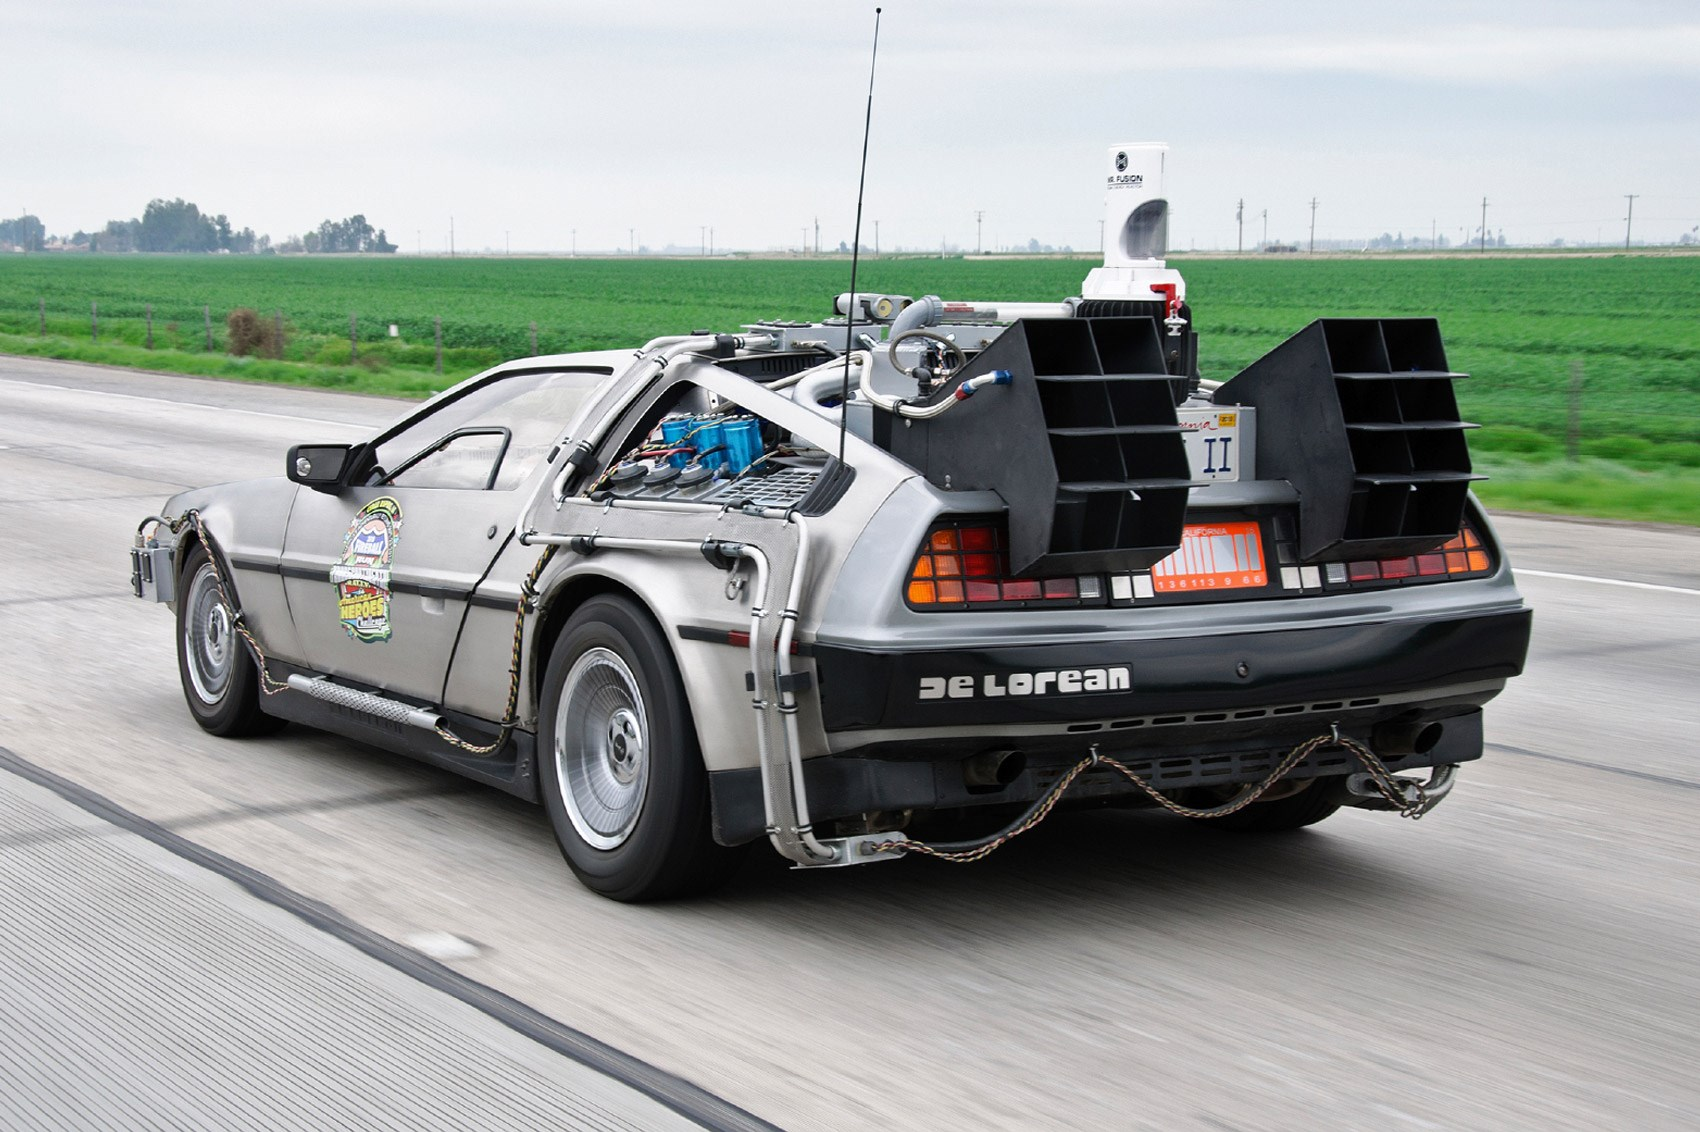 Deloreans For Sale >> This is heavy: a new DeLorean DMC-12 could go on sale in 2017 by CAR Magazine